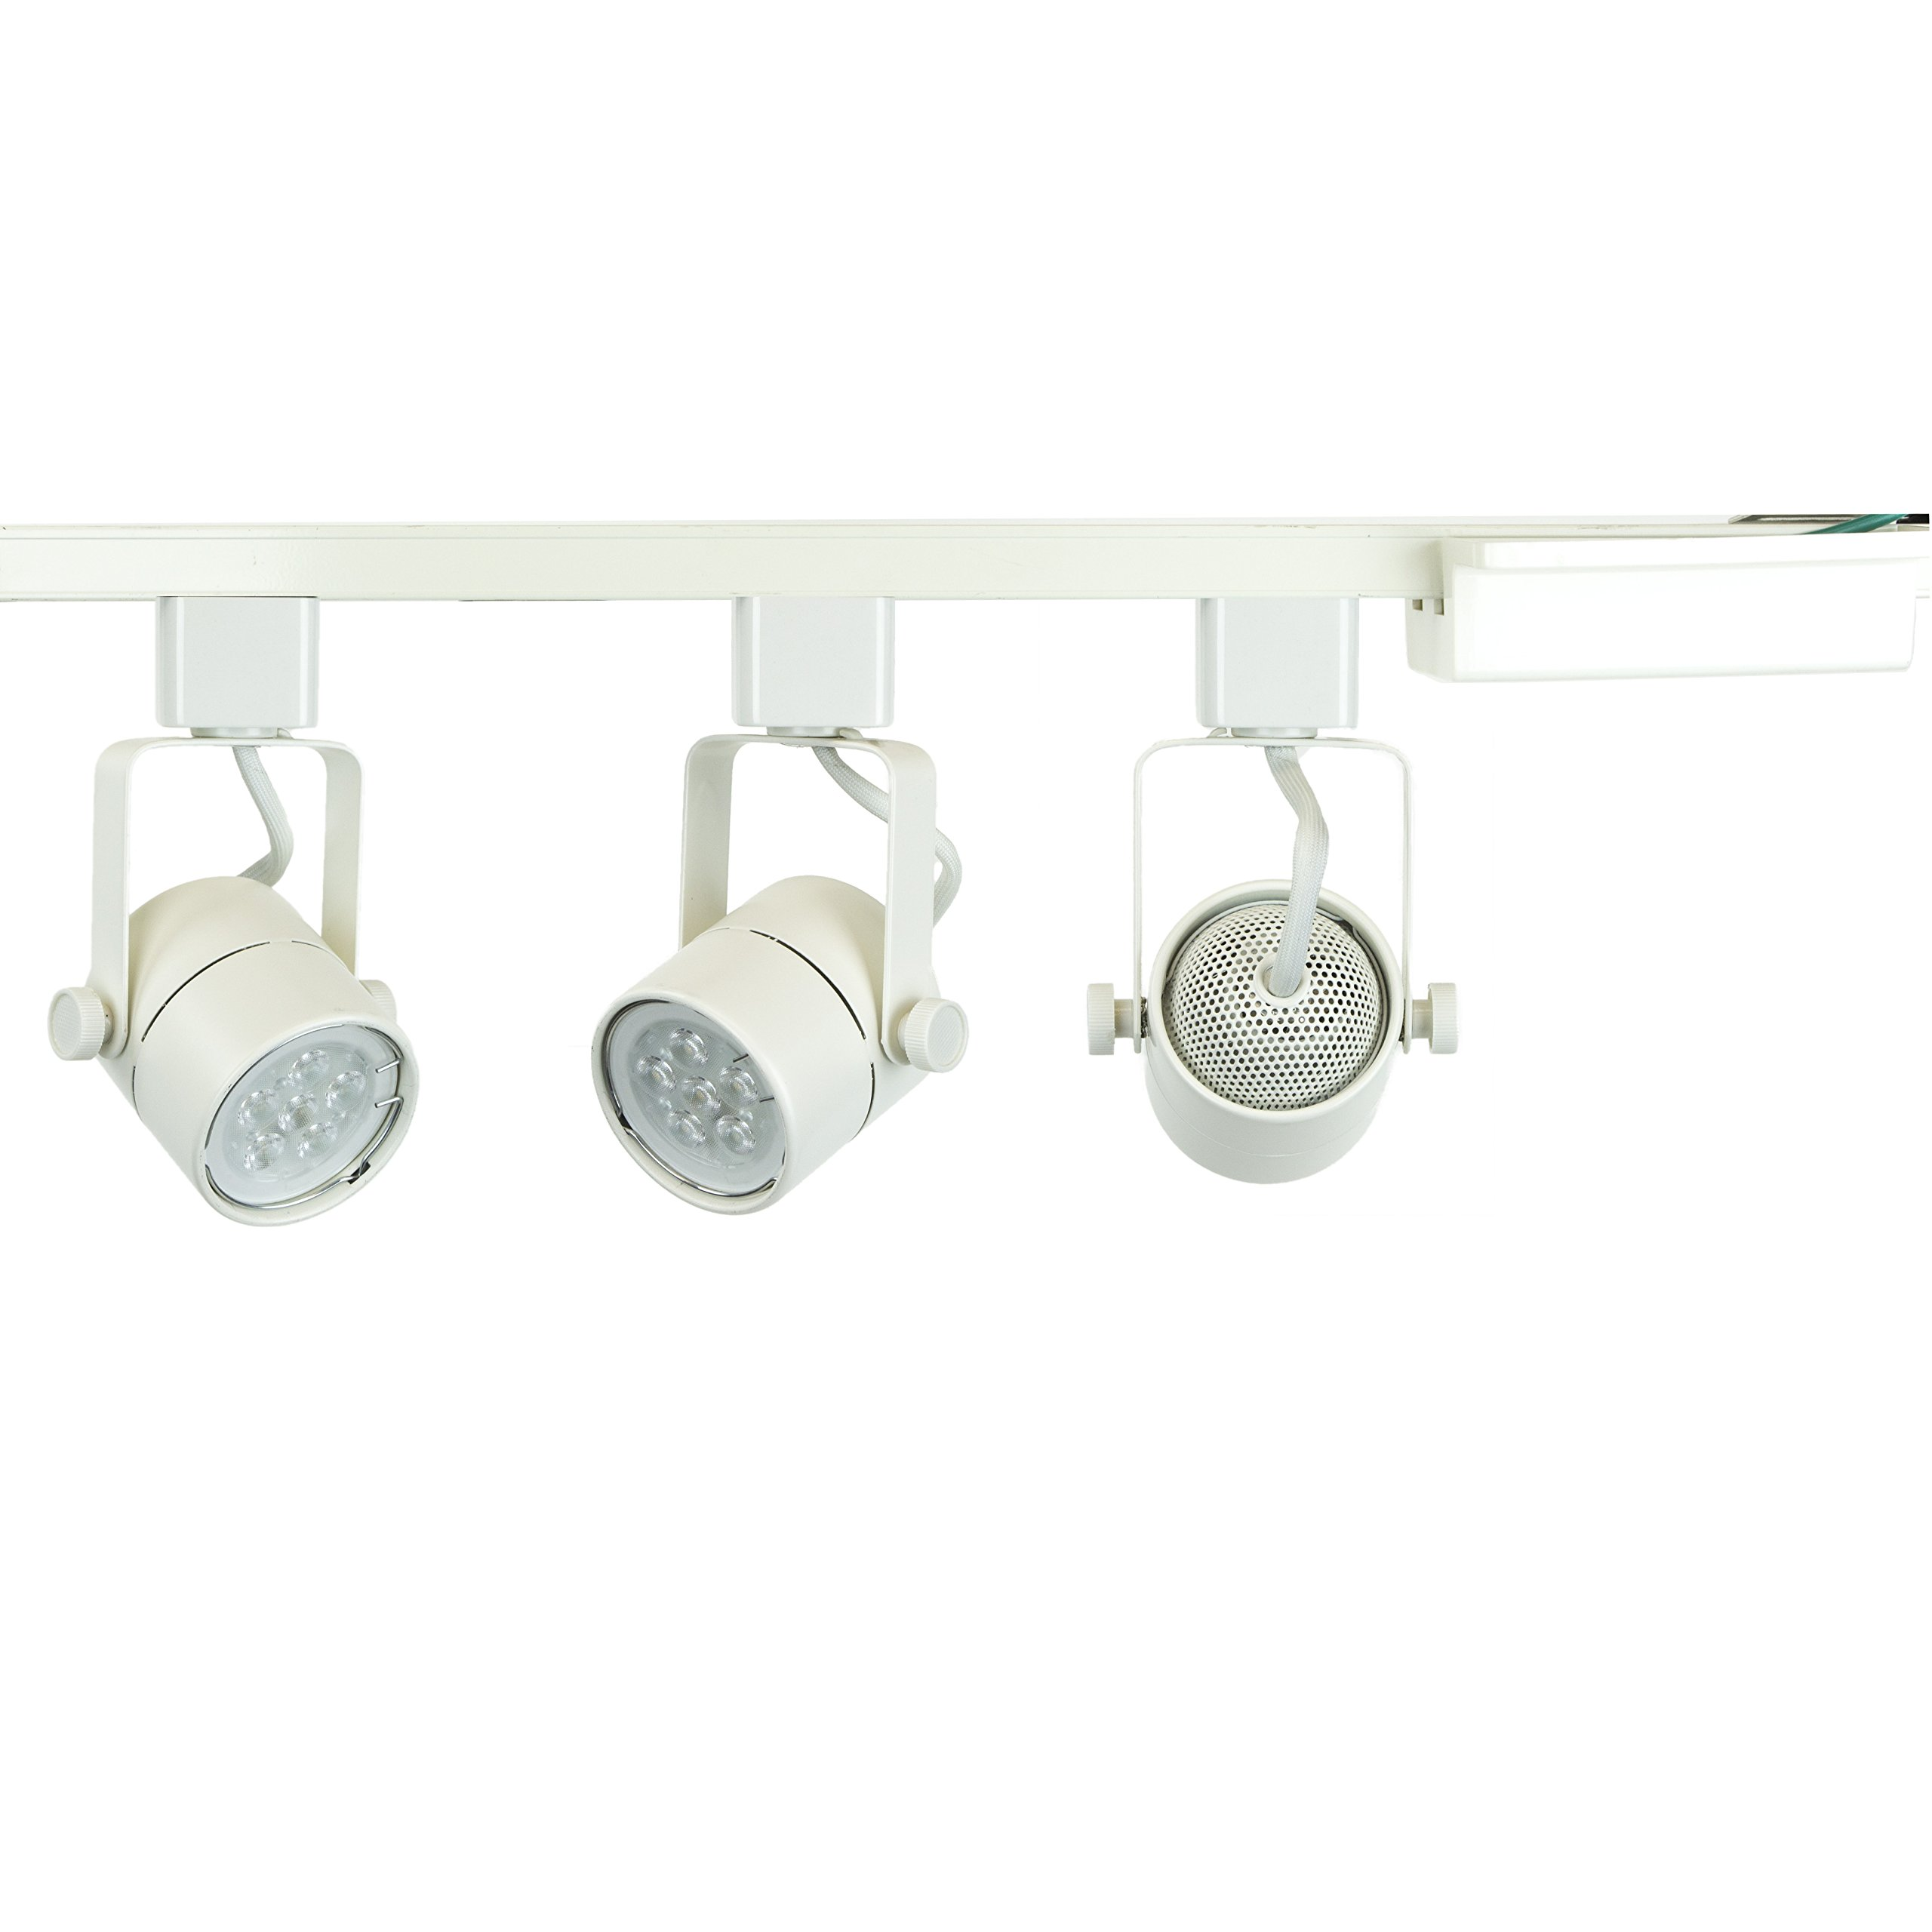 Direct-Lighting Brand H System 3-Lights GU10 7.5W LED (500 lumens Each) Track Lighting Kit White 3000K Warm White Bulbs Included HT-50154L-330K (White) by Direct-Lighting